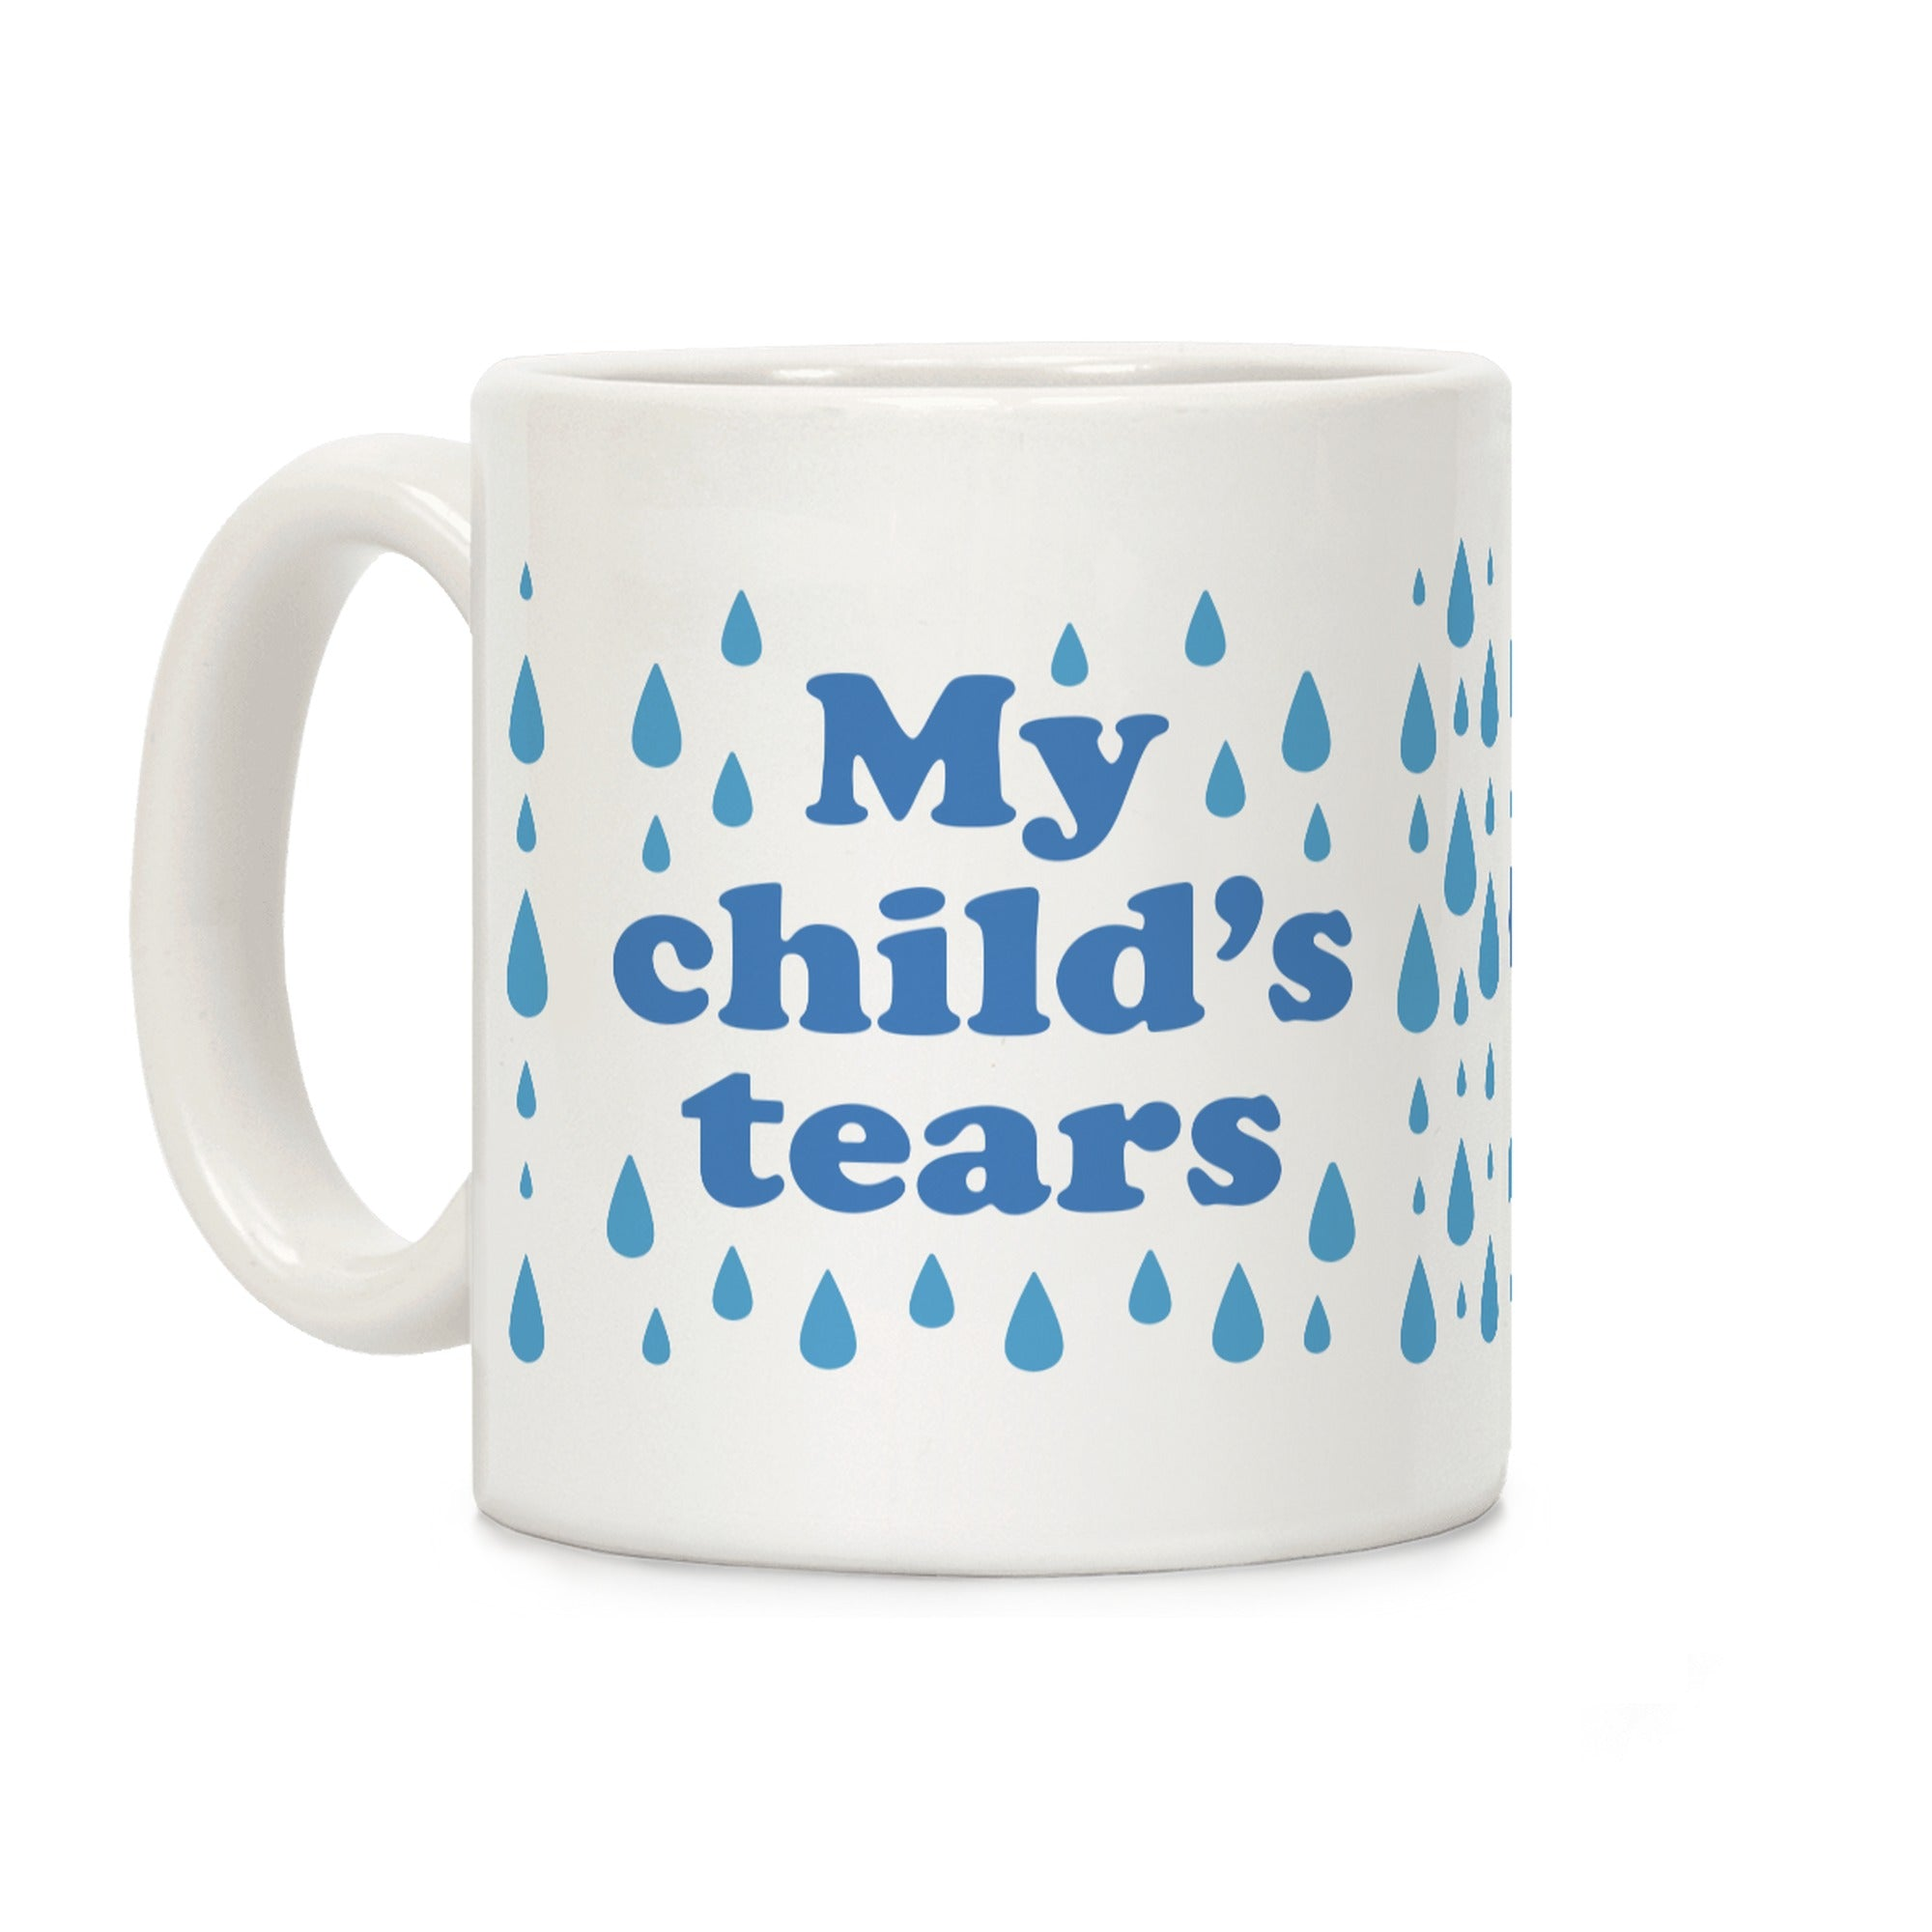 My Child's Tears Ceramic Coffee Mug by LookHUMAN